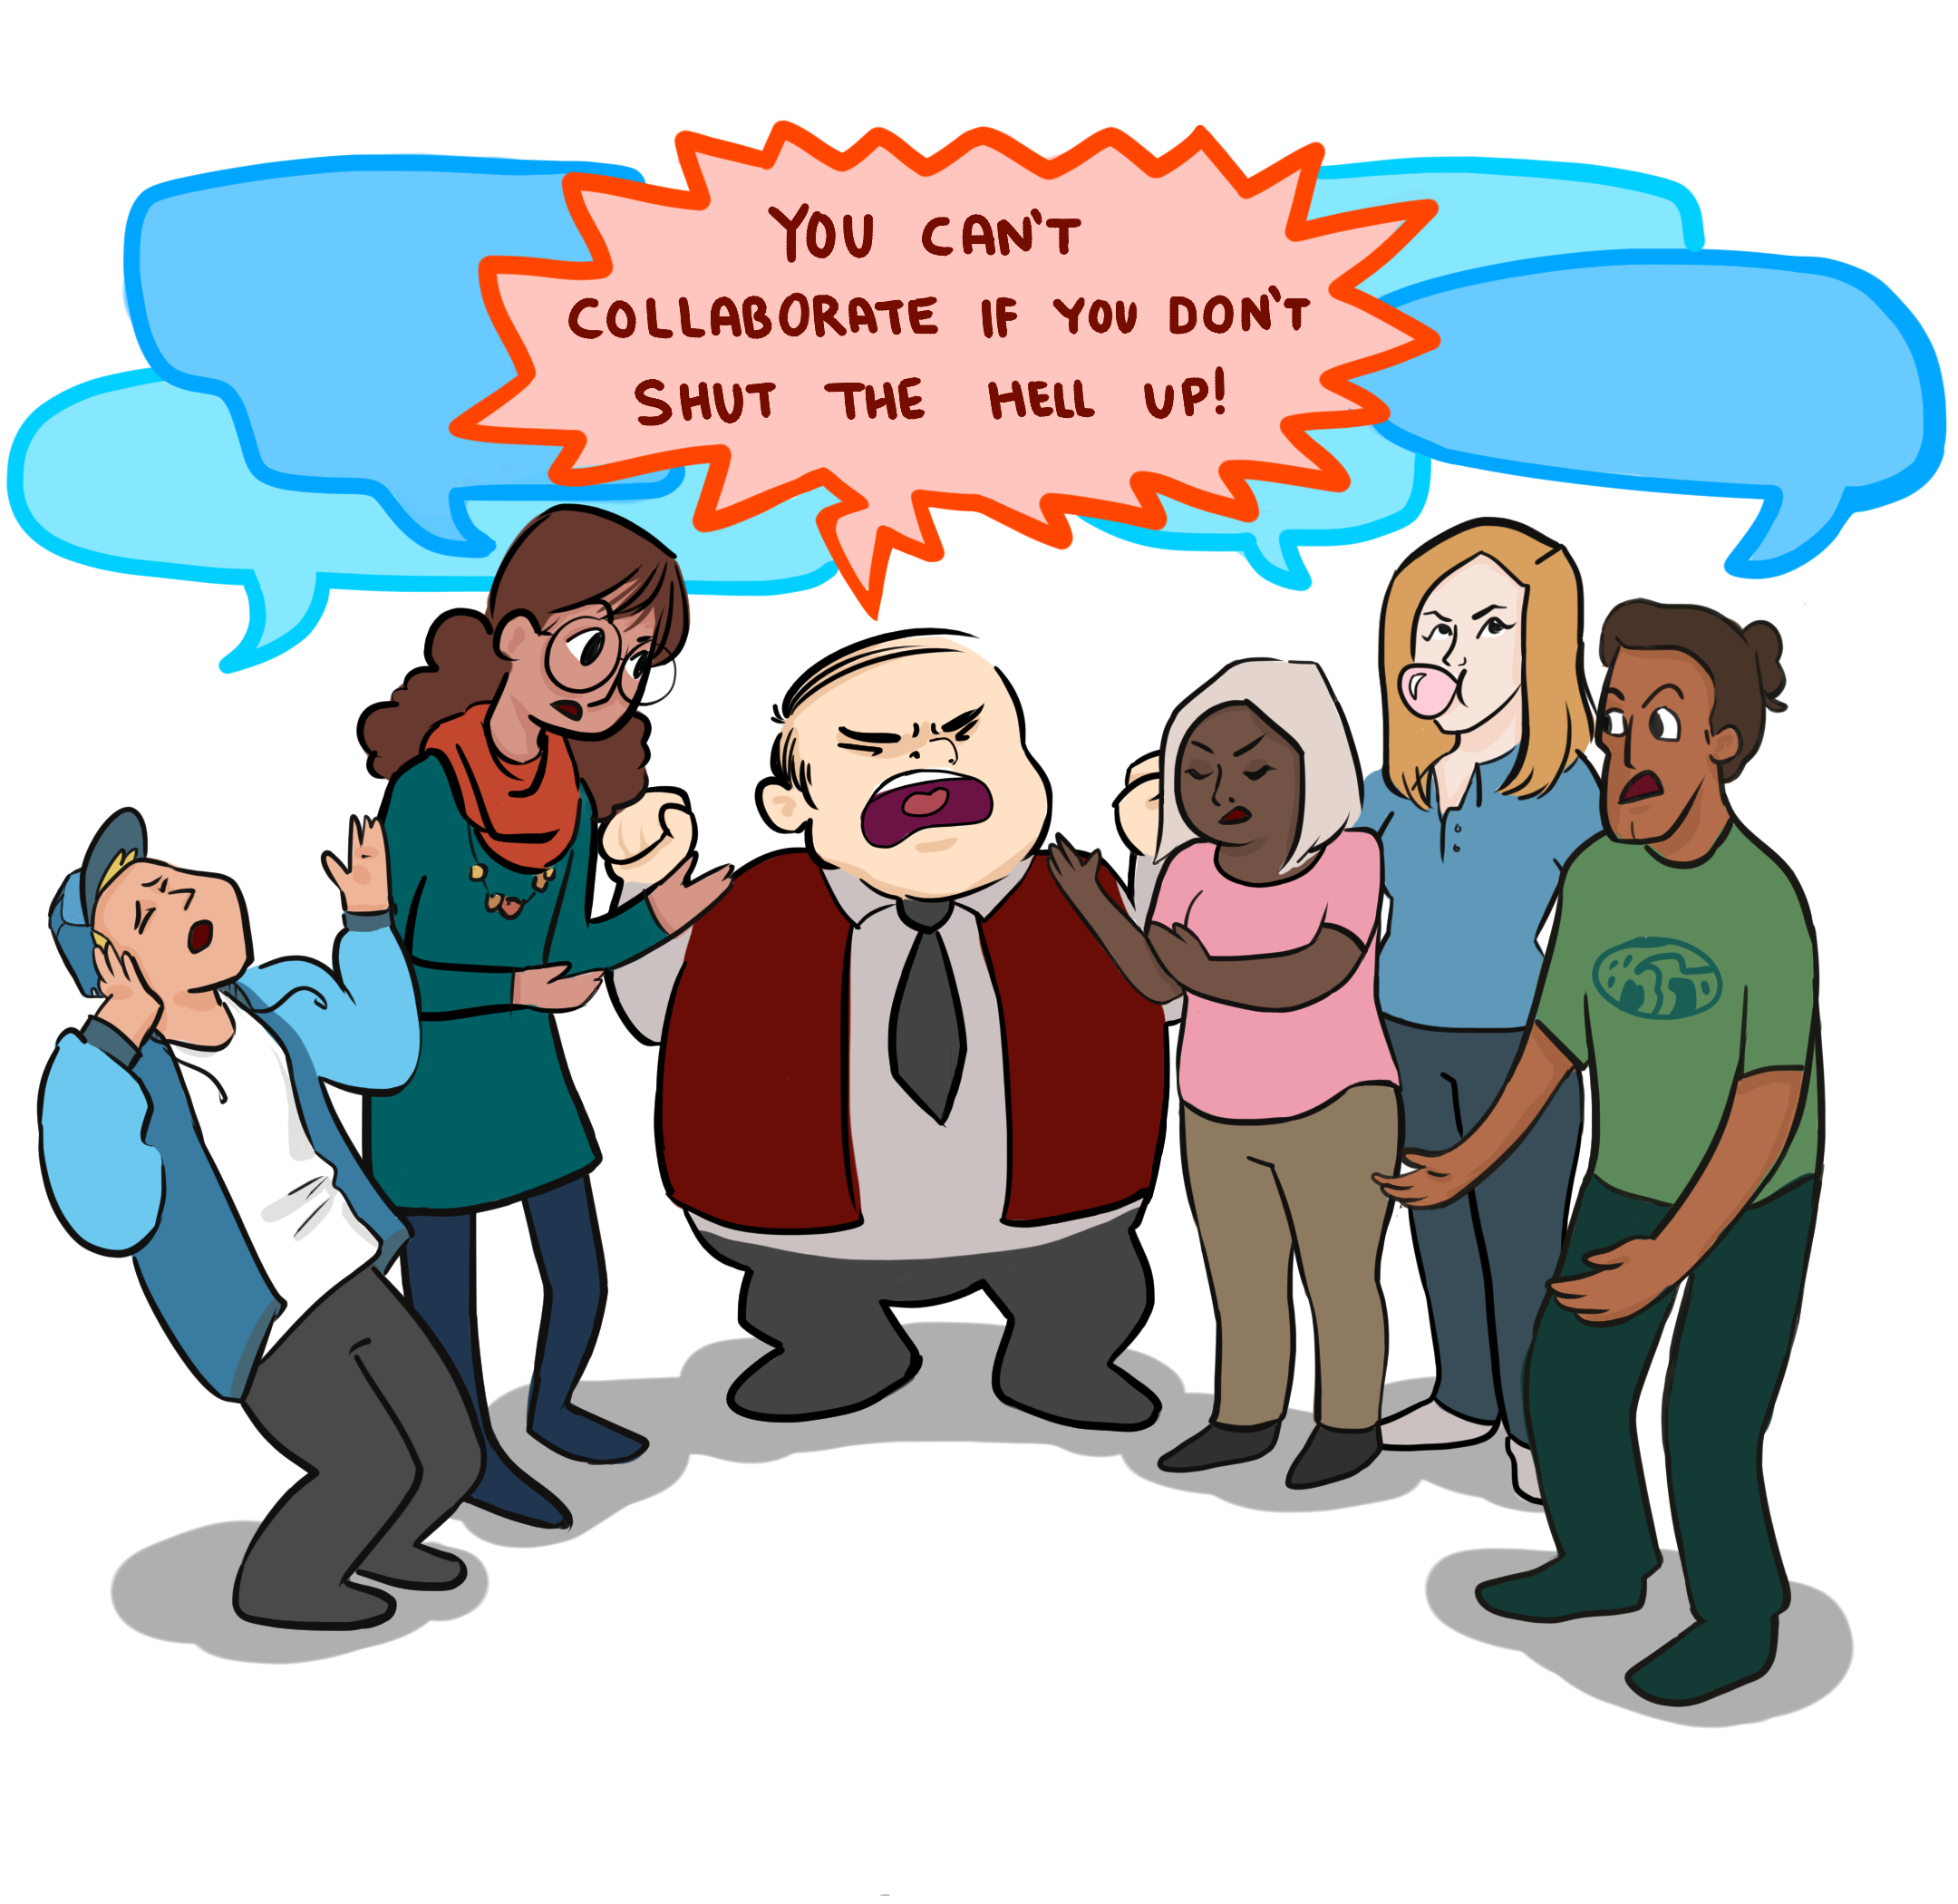 Working clipart positive workplace. Collaboration in a real